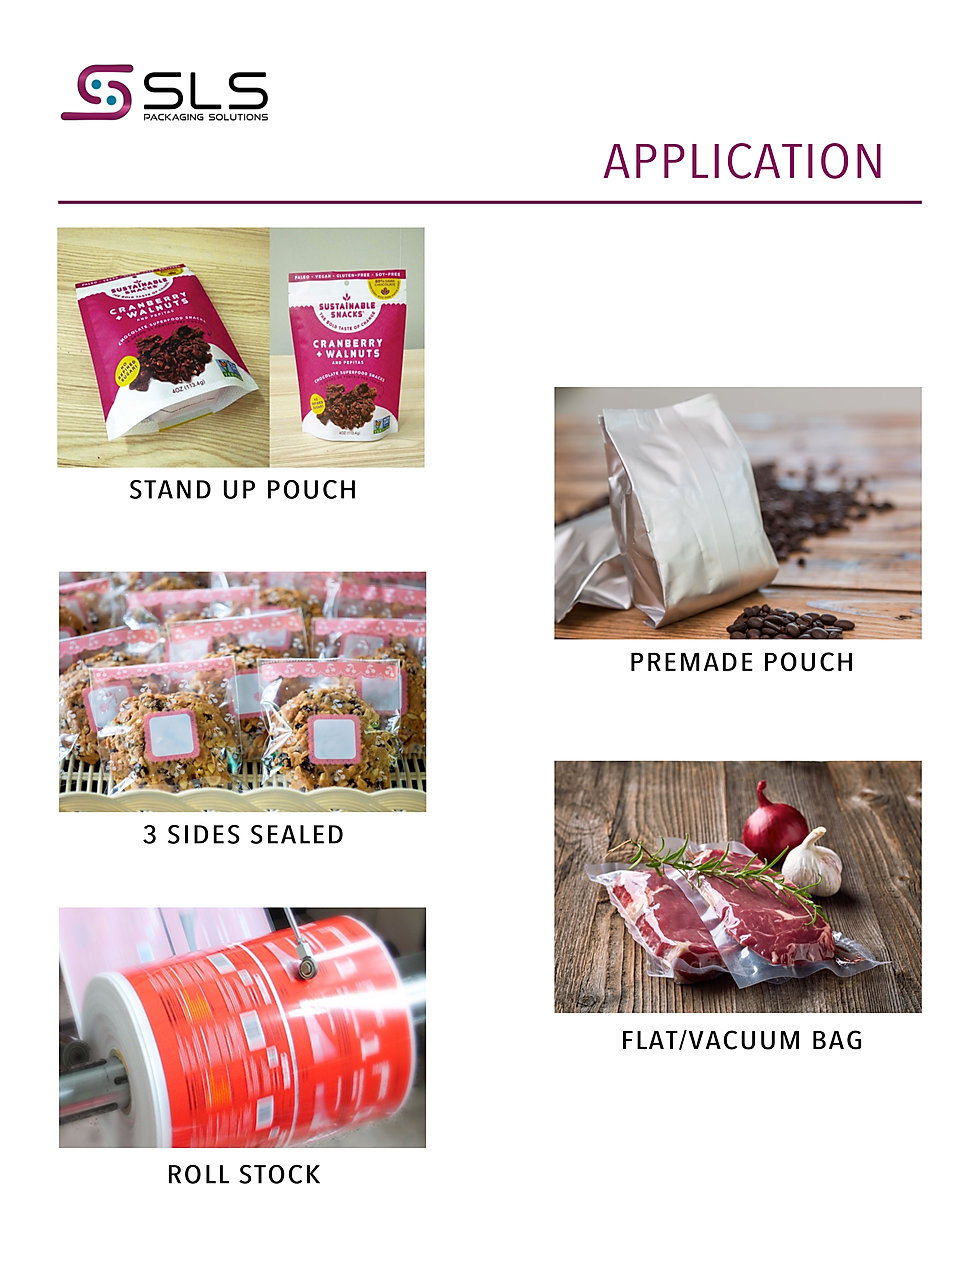 SLS-Packaging-Solutions-brochure-final-2